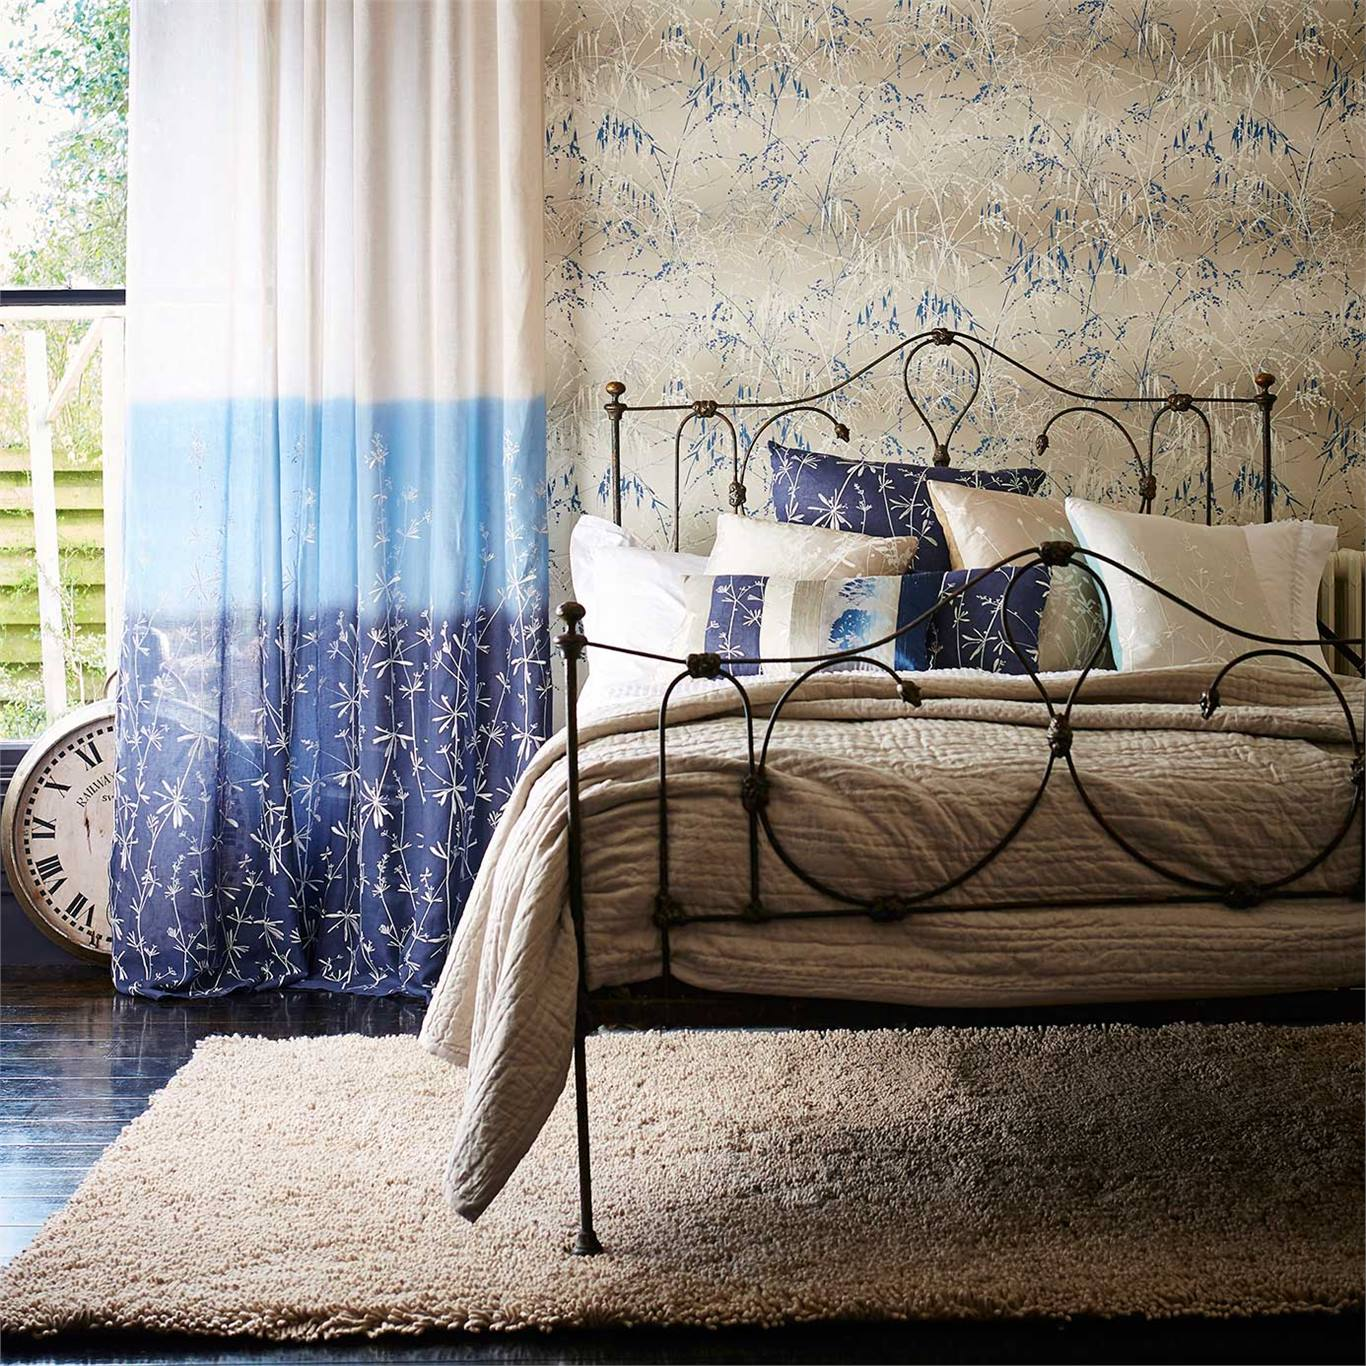 Meadow Grass Wallpaper From The Callista Collection By Harlequin Australia